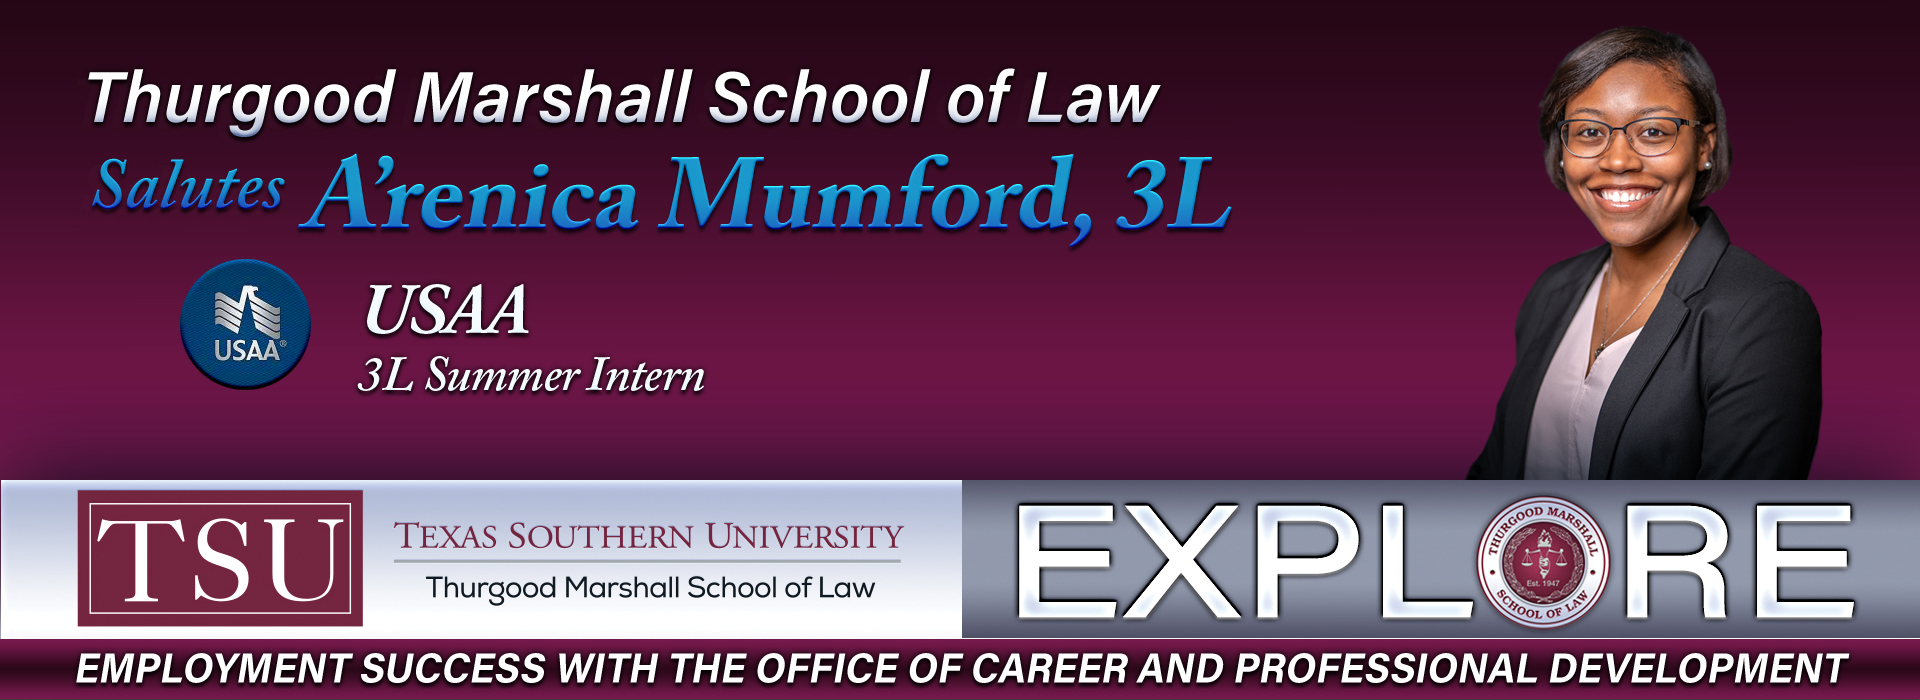 Welcome to Thurgood Marshall School of Law in Houston, Texas